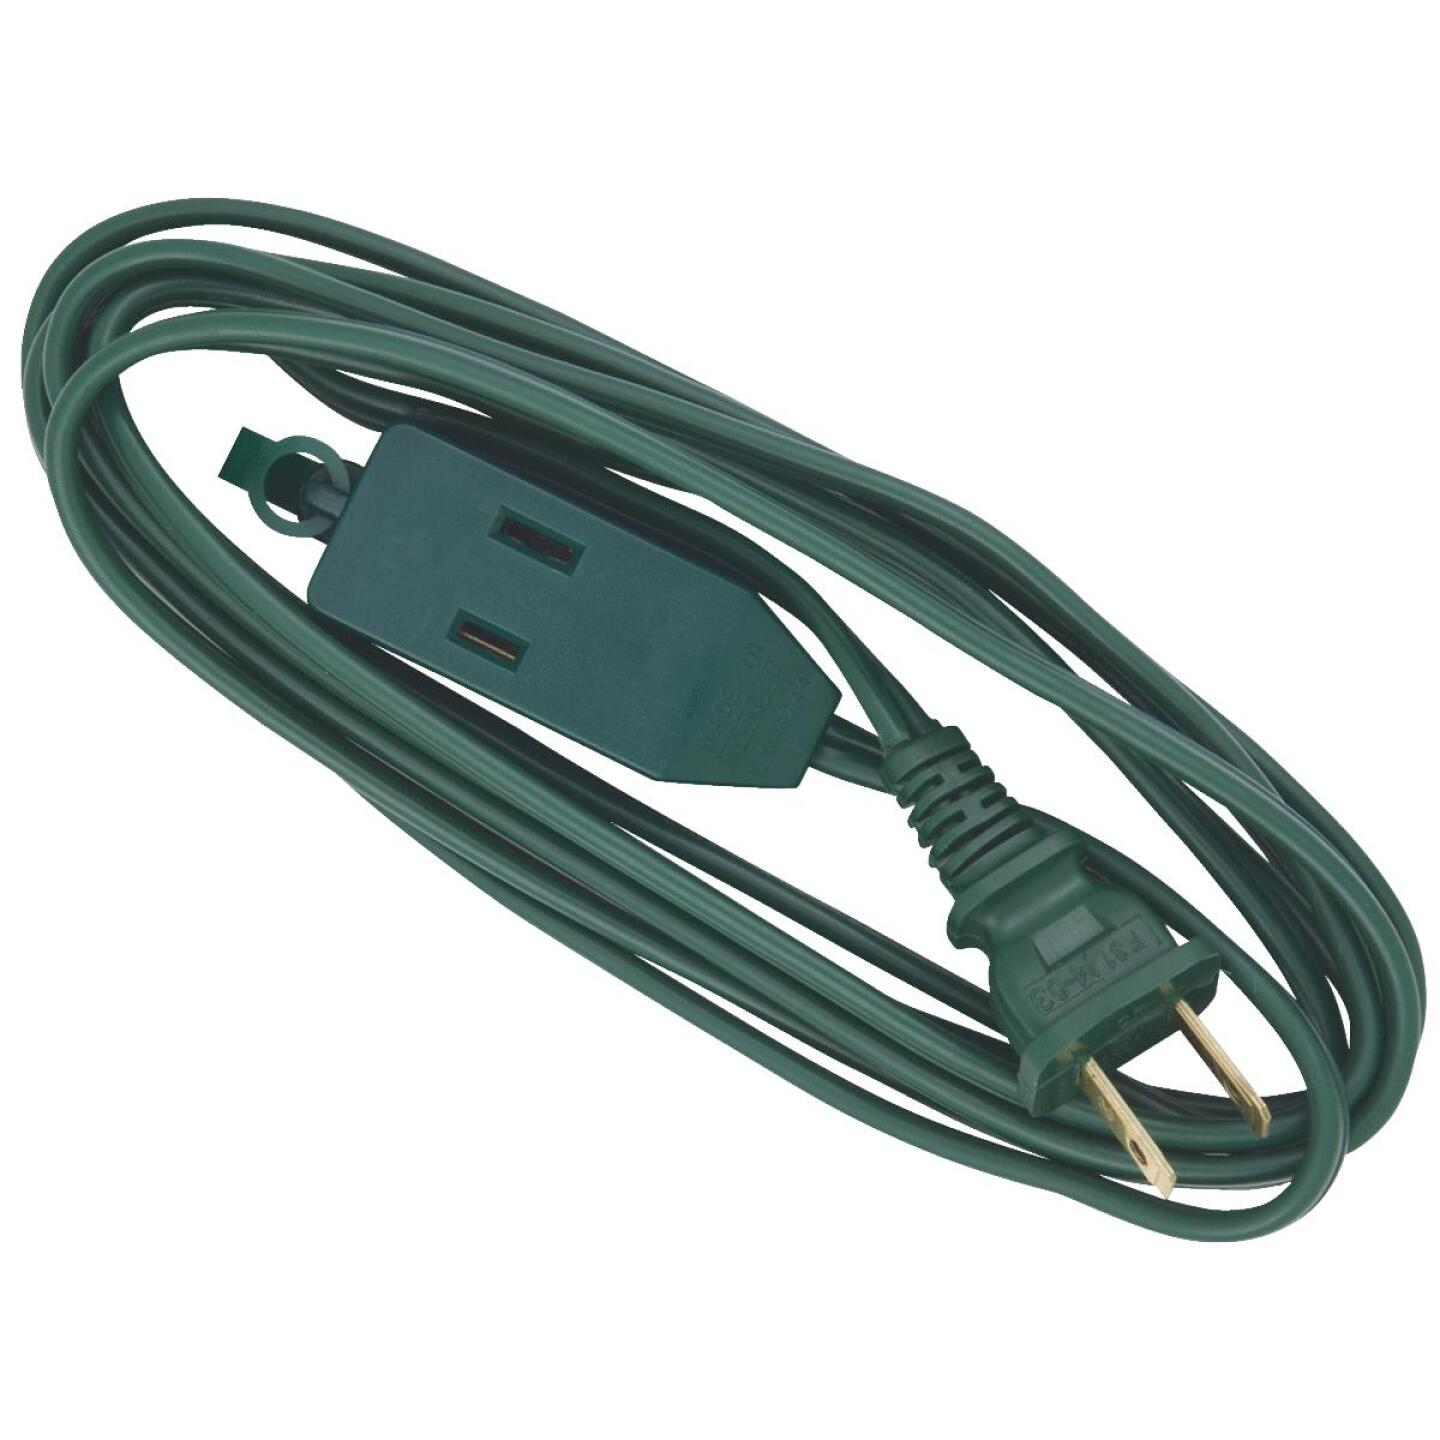 Do it 9 Ft. 16/2 Green Cube Tap Extension Cord Image 1